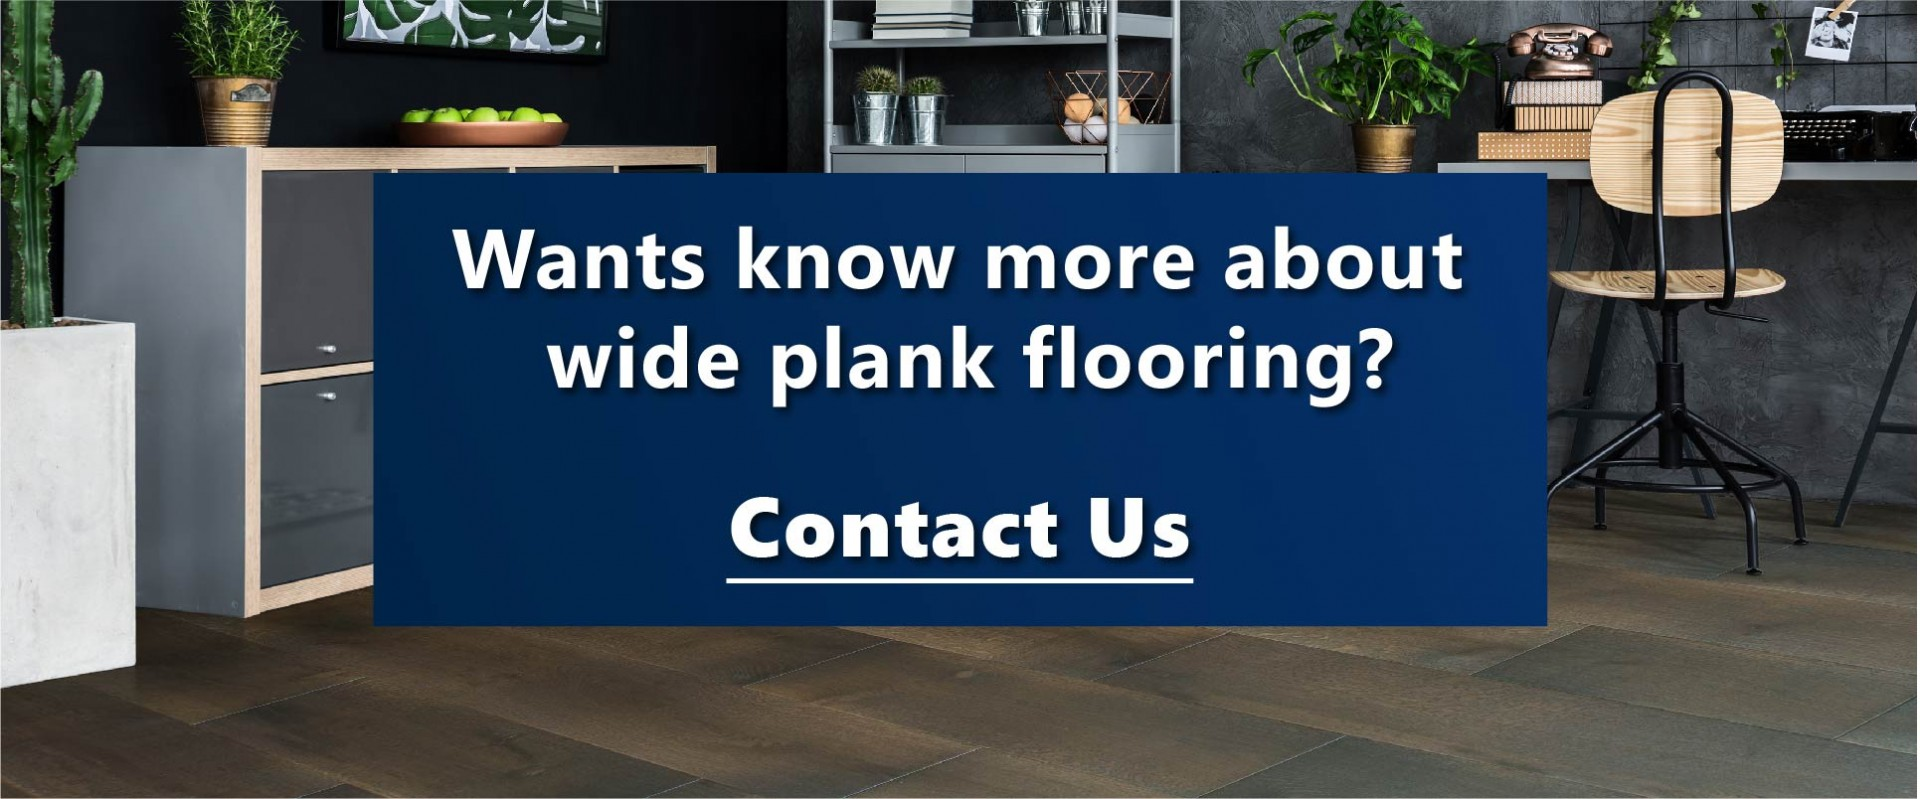 Contact Us to know more about Engineered Hardwood Flooring